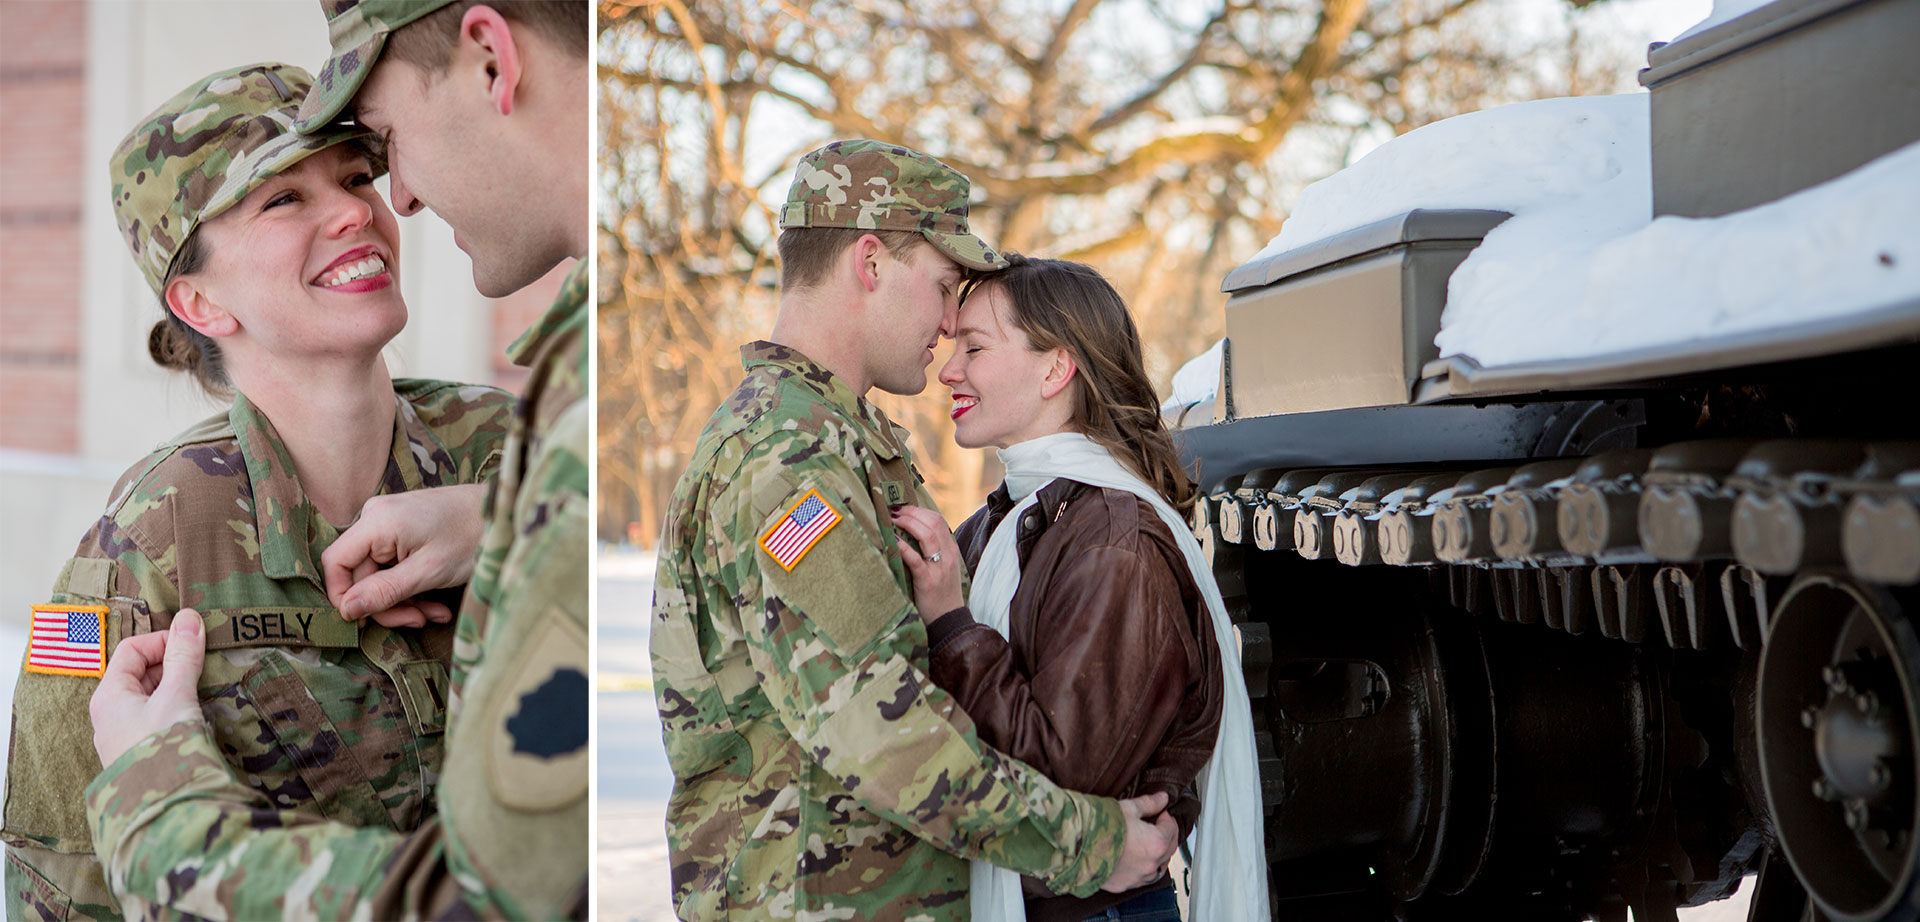 Isely-engaged-millitary-army-national-guard-cantigny-park-peoria-riverfront-peoria-central-illinois-bloomington-normal-wedding-engagement-photographer-photographers-photography.jpg